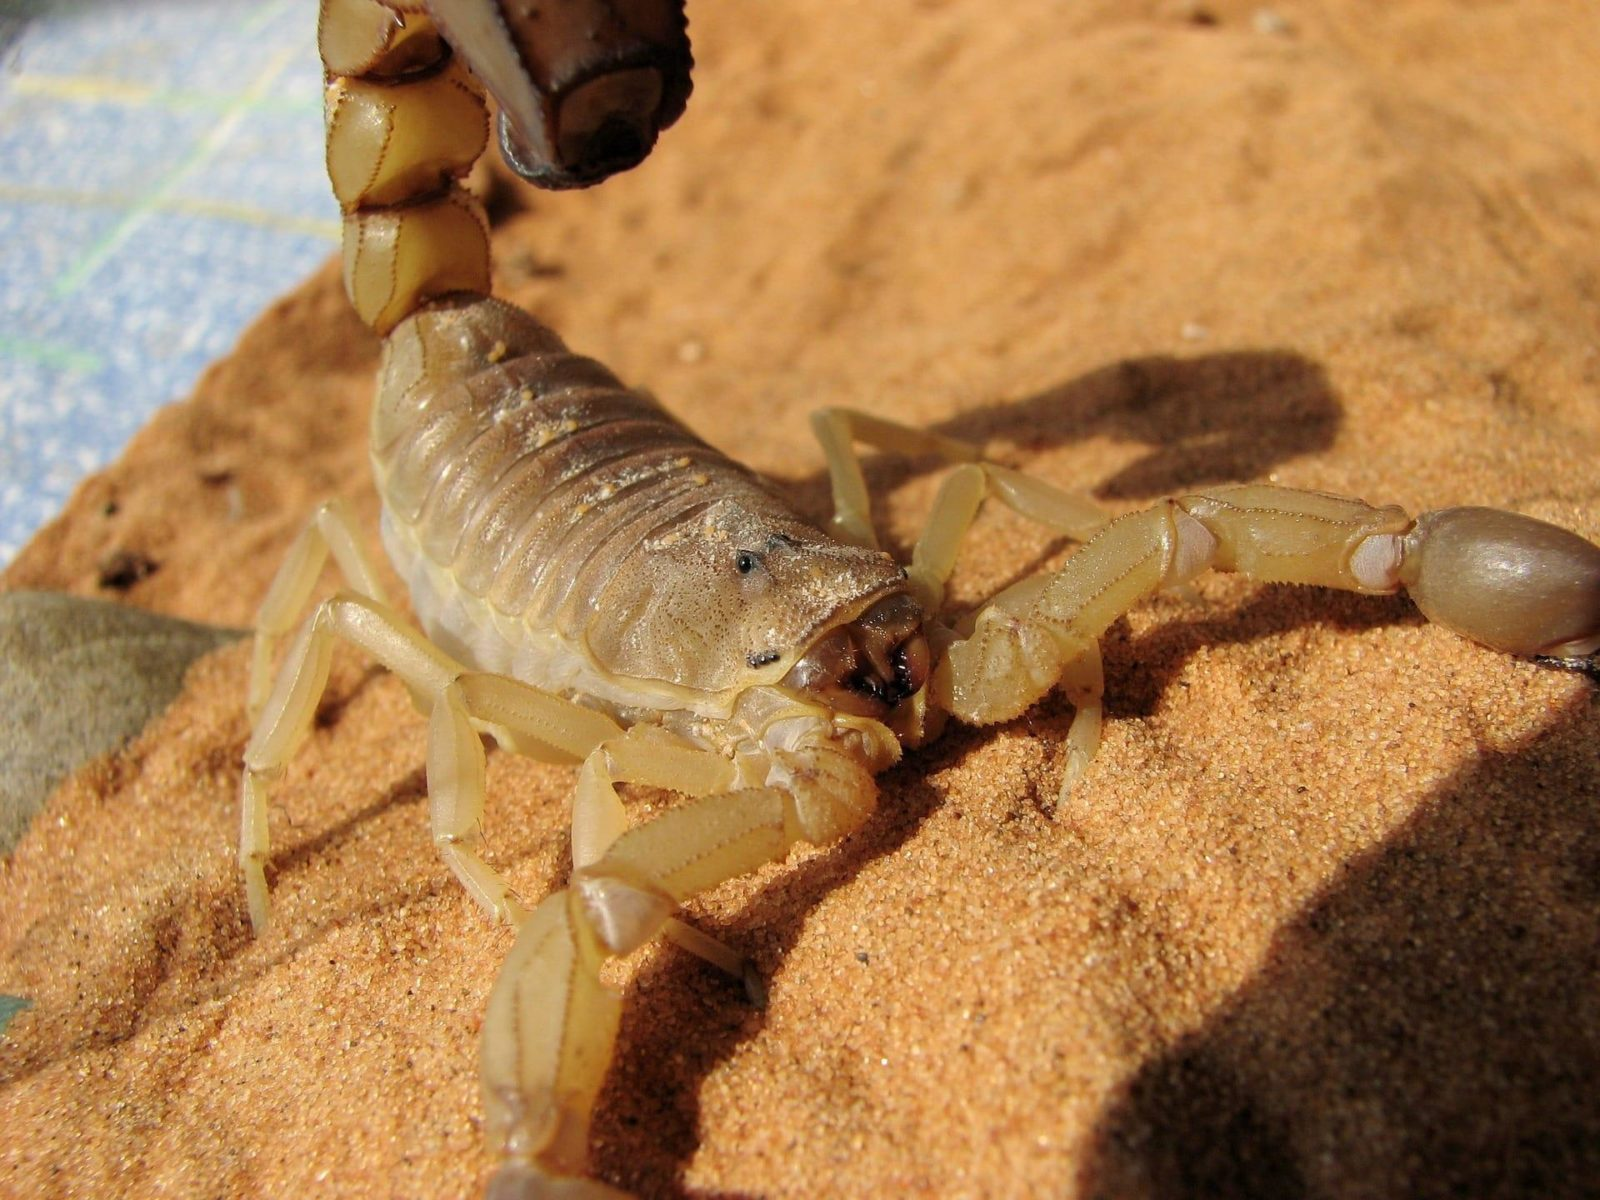 The night I thought I was going to die from a Scorpion sting in Guatemala